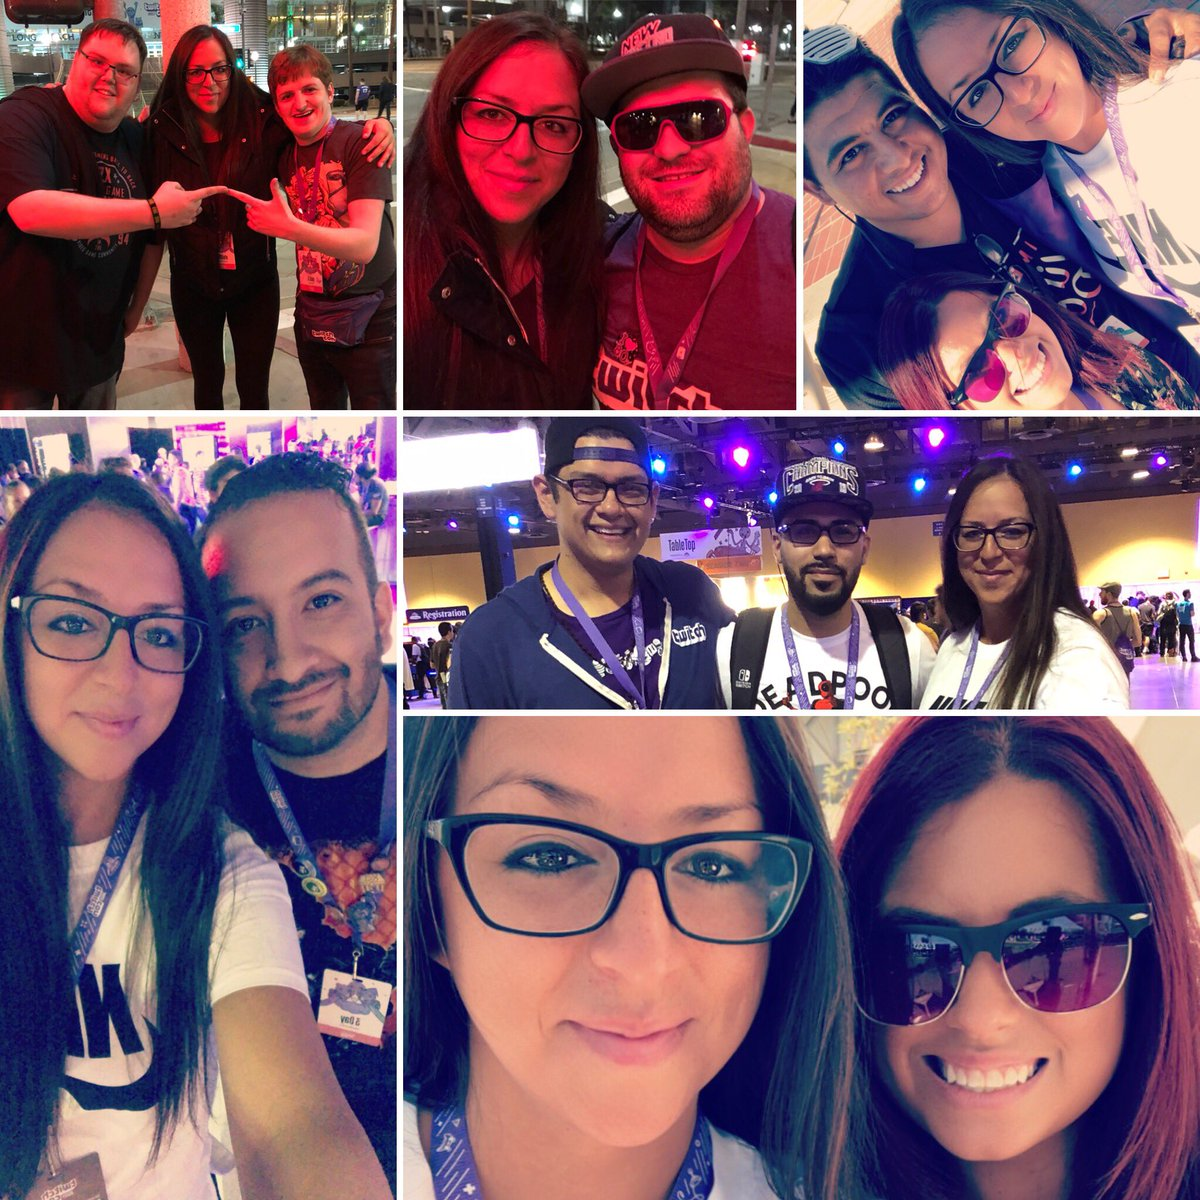 #TwitchCon was simply amazing! I'm so excited to see you all again & meet more amazing friends! I love you all! 💜 https://t.co/uIjWM5Tba9